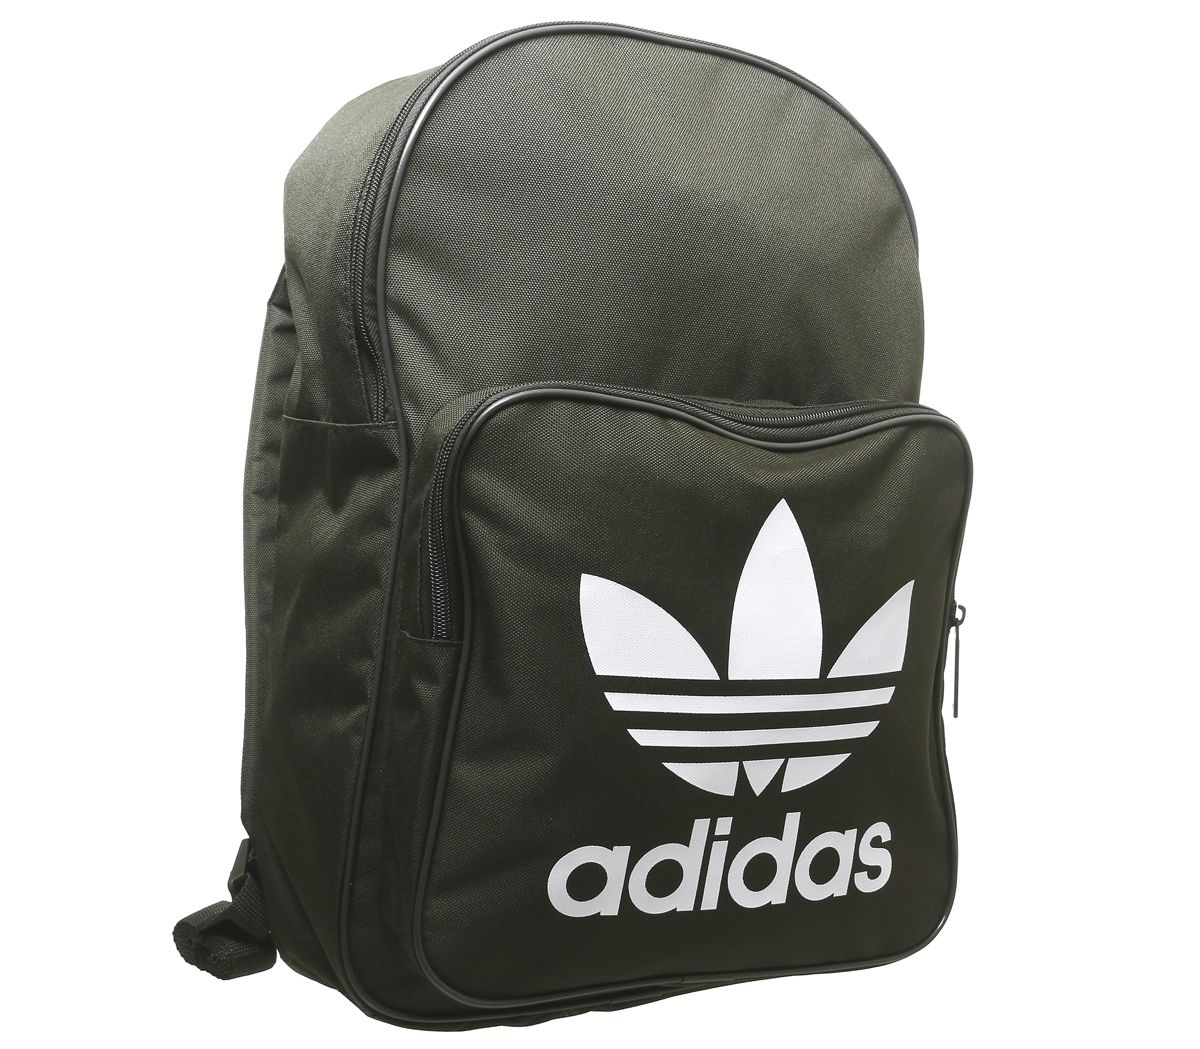 221941a56 Sentinel Accessories Adidas Classic Trefoil Backpacks Night Cargo White  Accessories